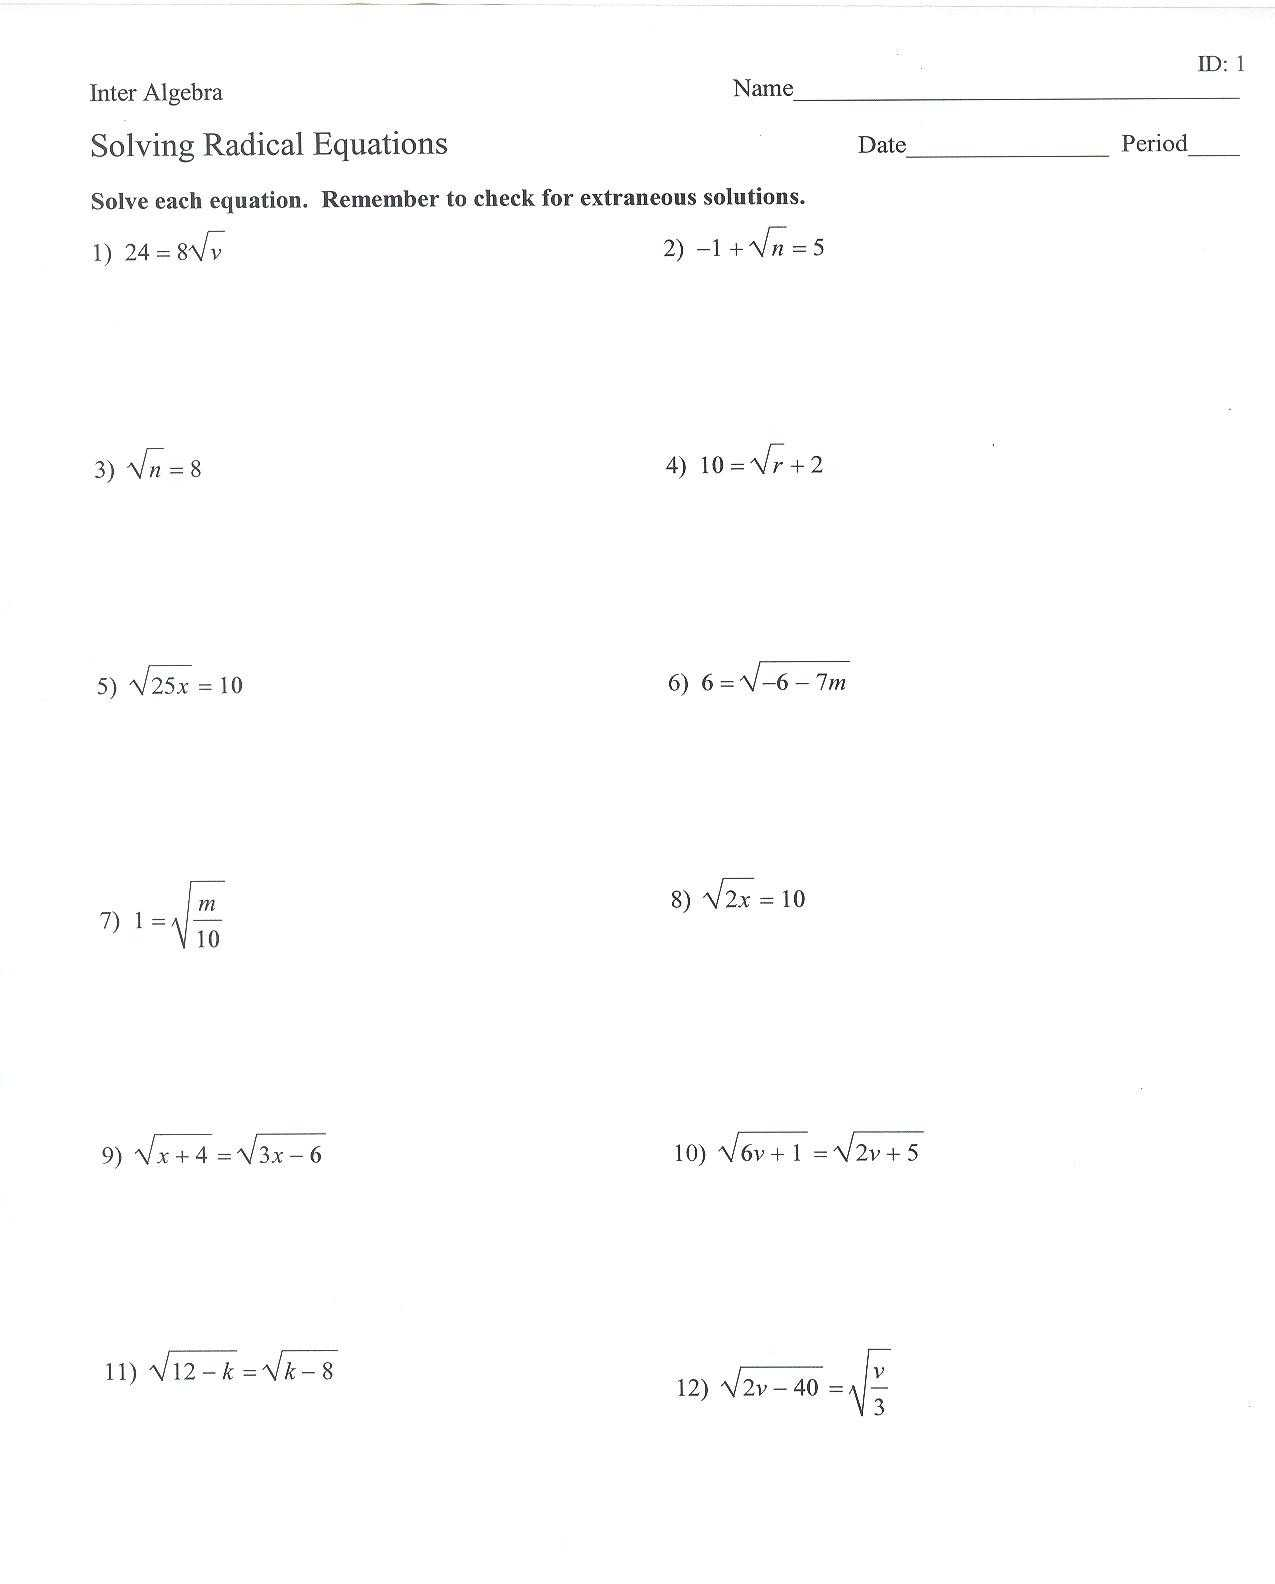 Radicals and Rational Exponents Worksheet Answers together with 36 Elegant solving Radical Equations Worksheet Answers